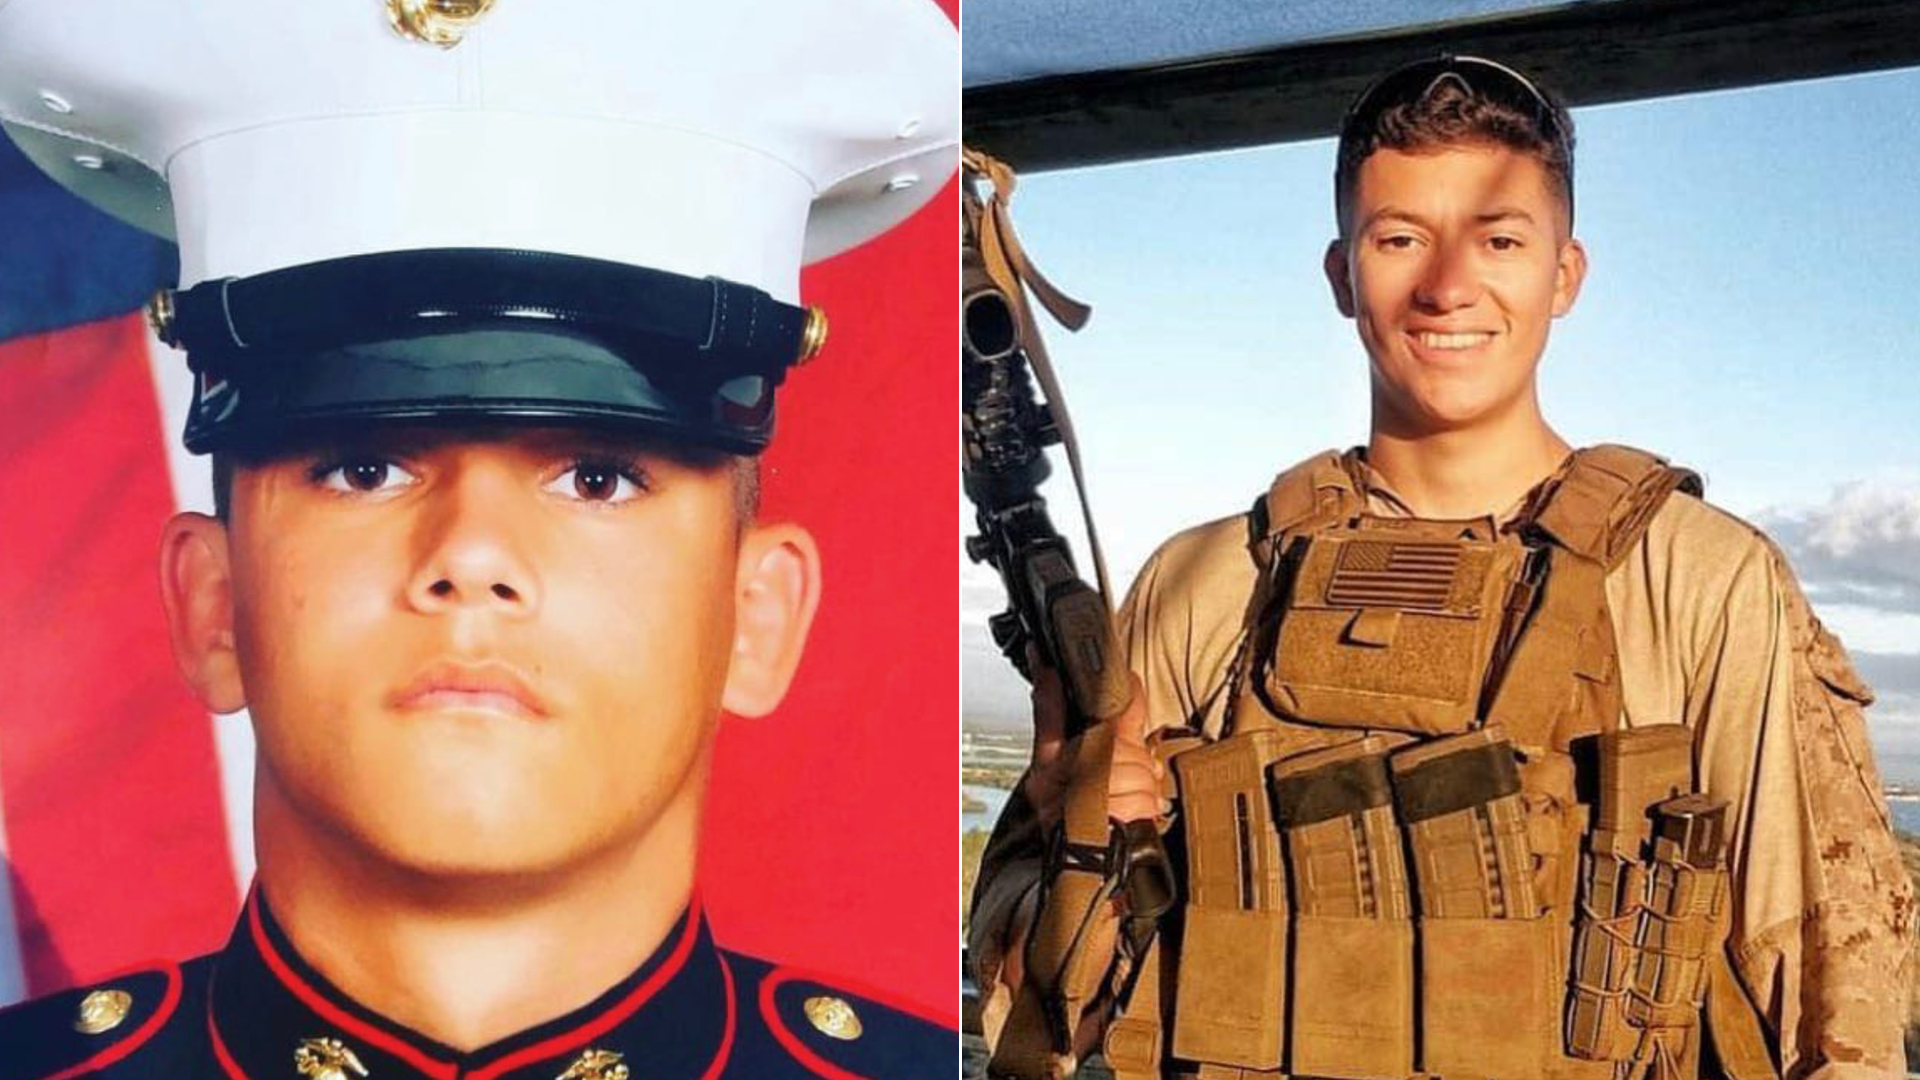 Lance Cpl. Kareem Nikoui, left, is seen in a U.S. Marine Corps portrait provided by the city of Norco. At right, Marine Corps Cpl. Hunter Lopez is seen in a photo provided by Riverside County Sheriff Chad Bianco.